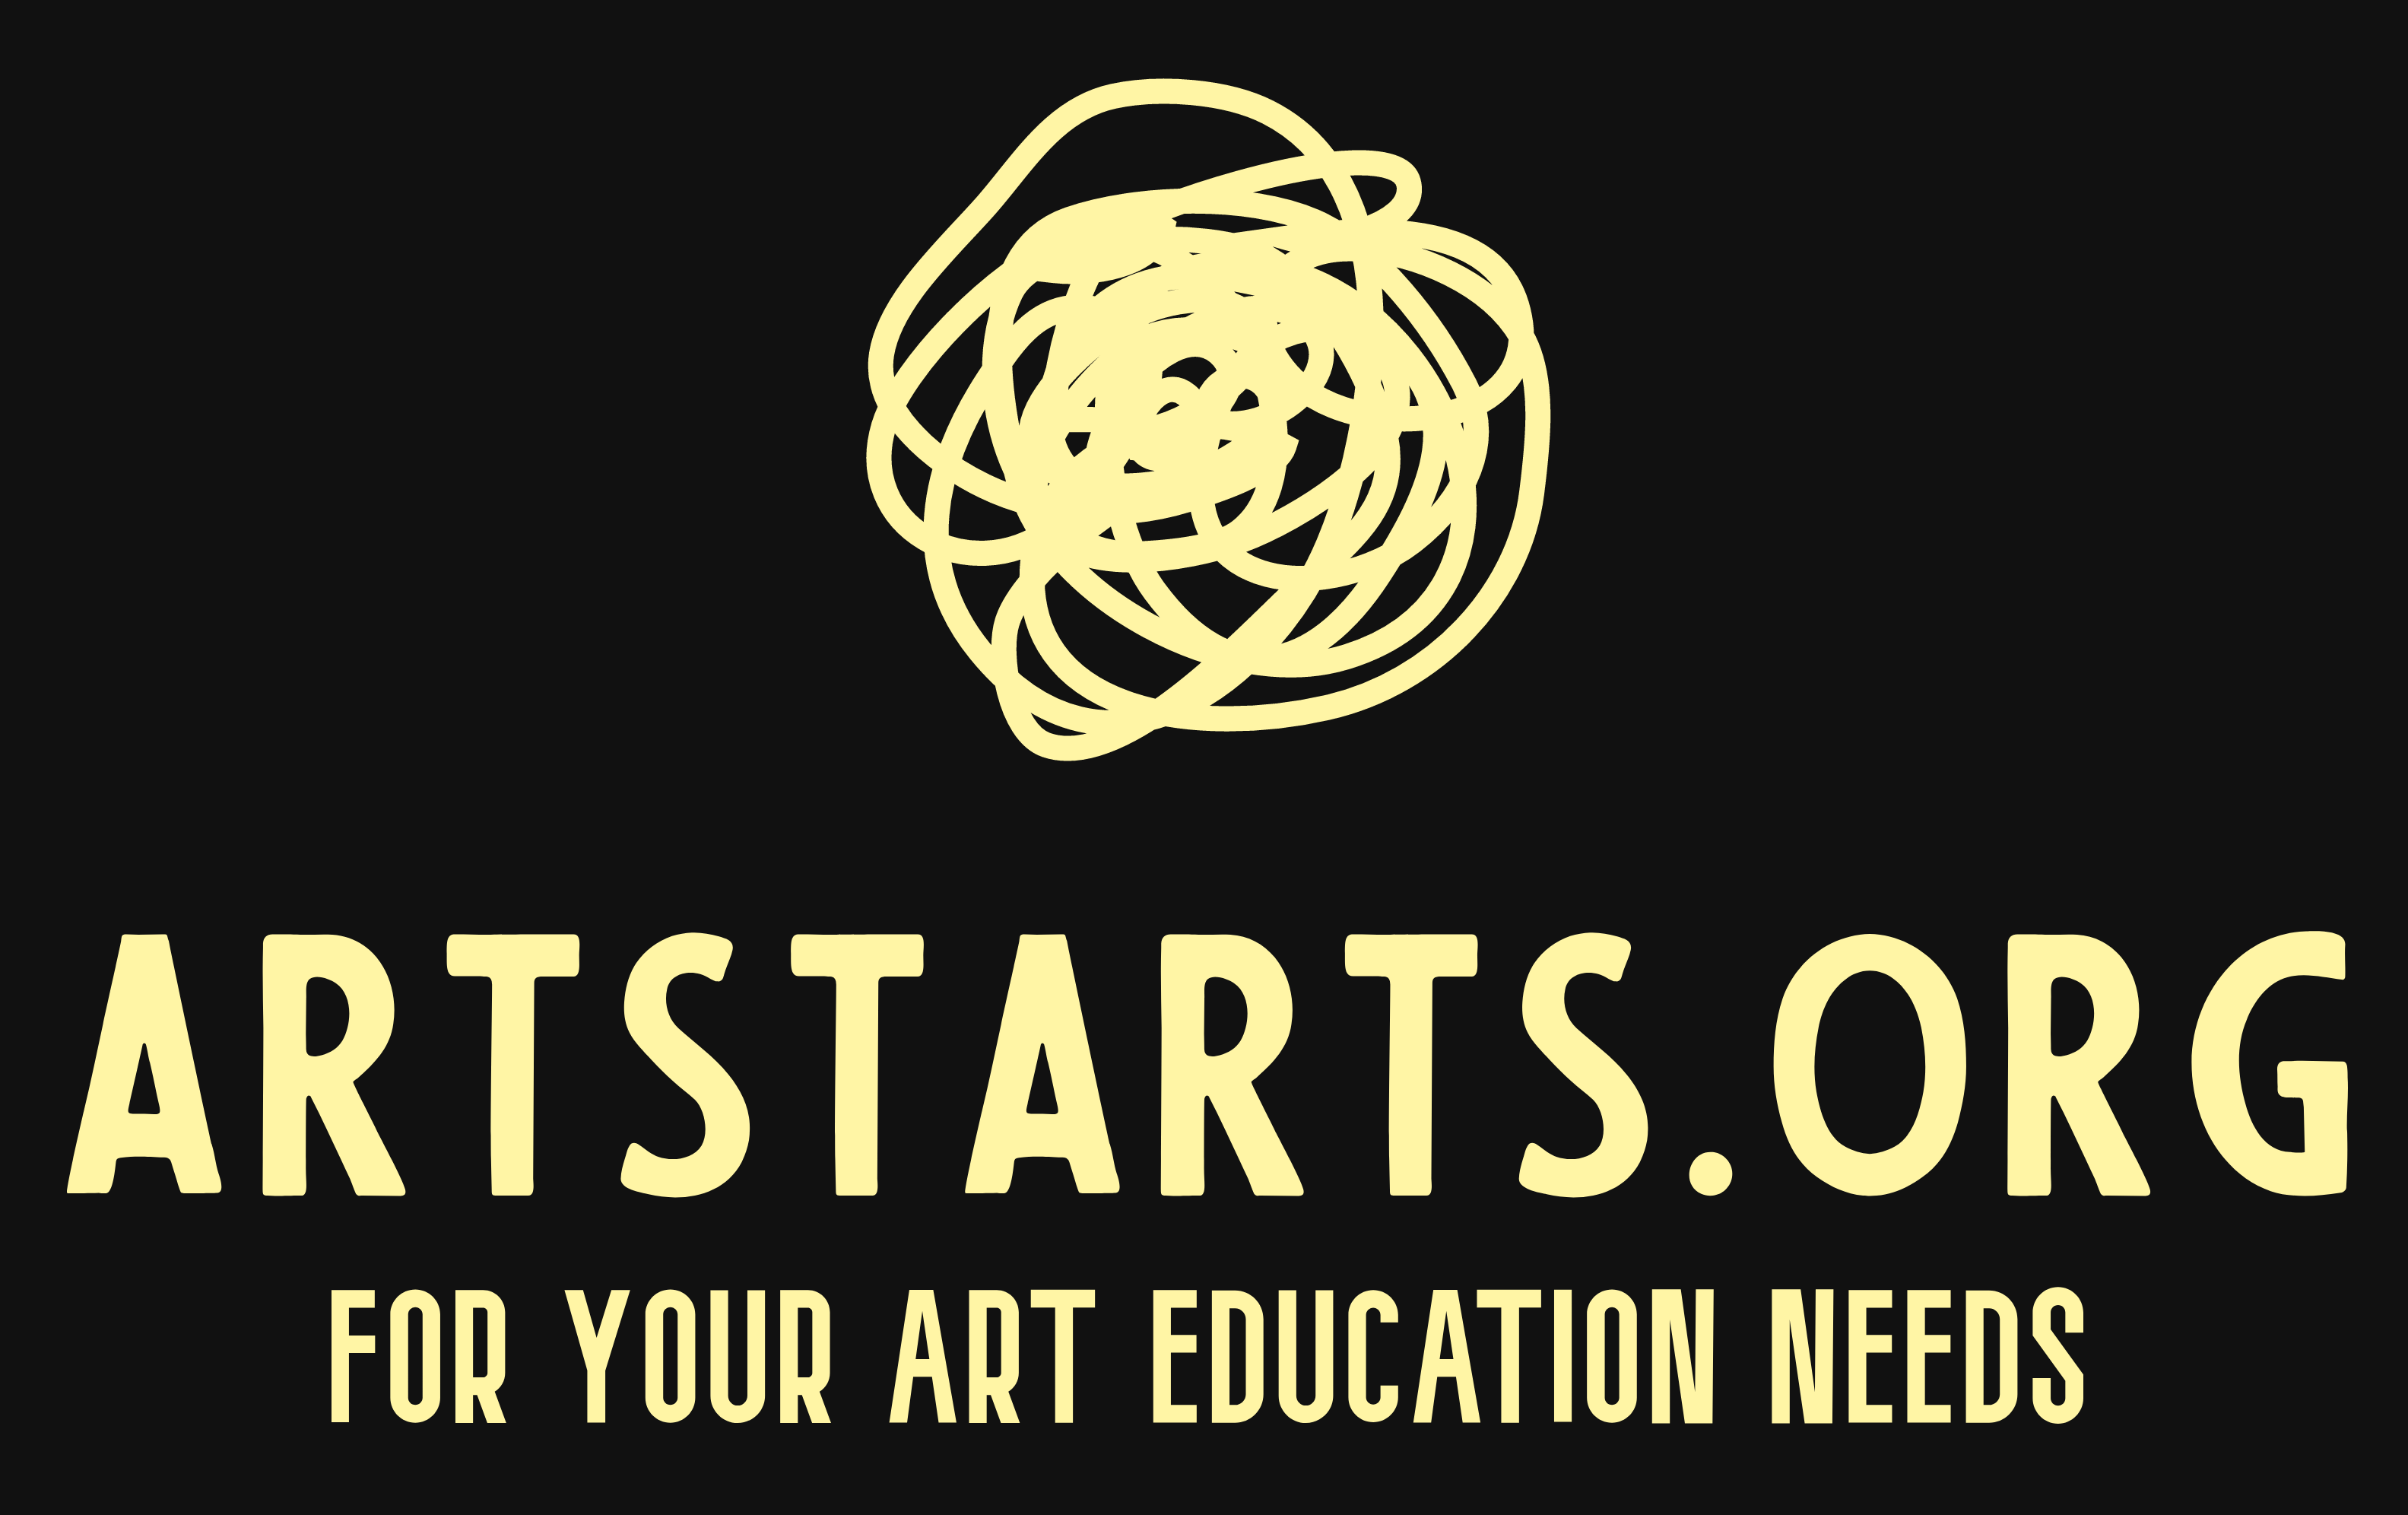 For your art education needs